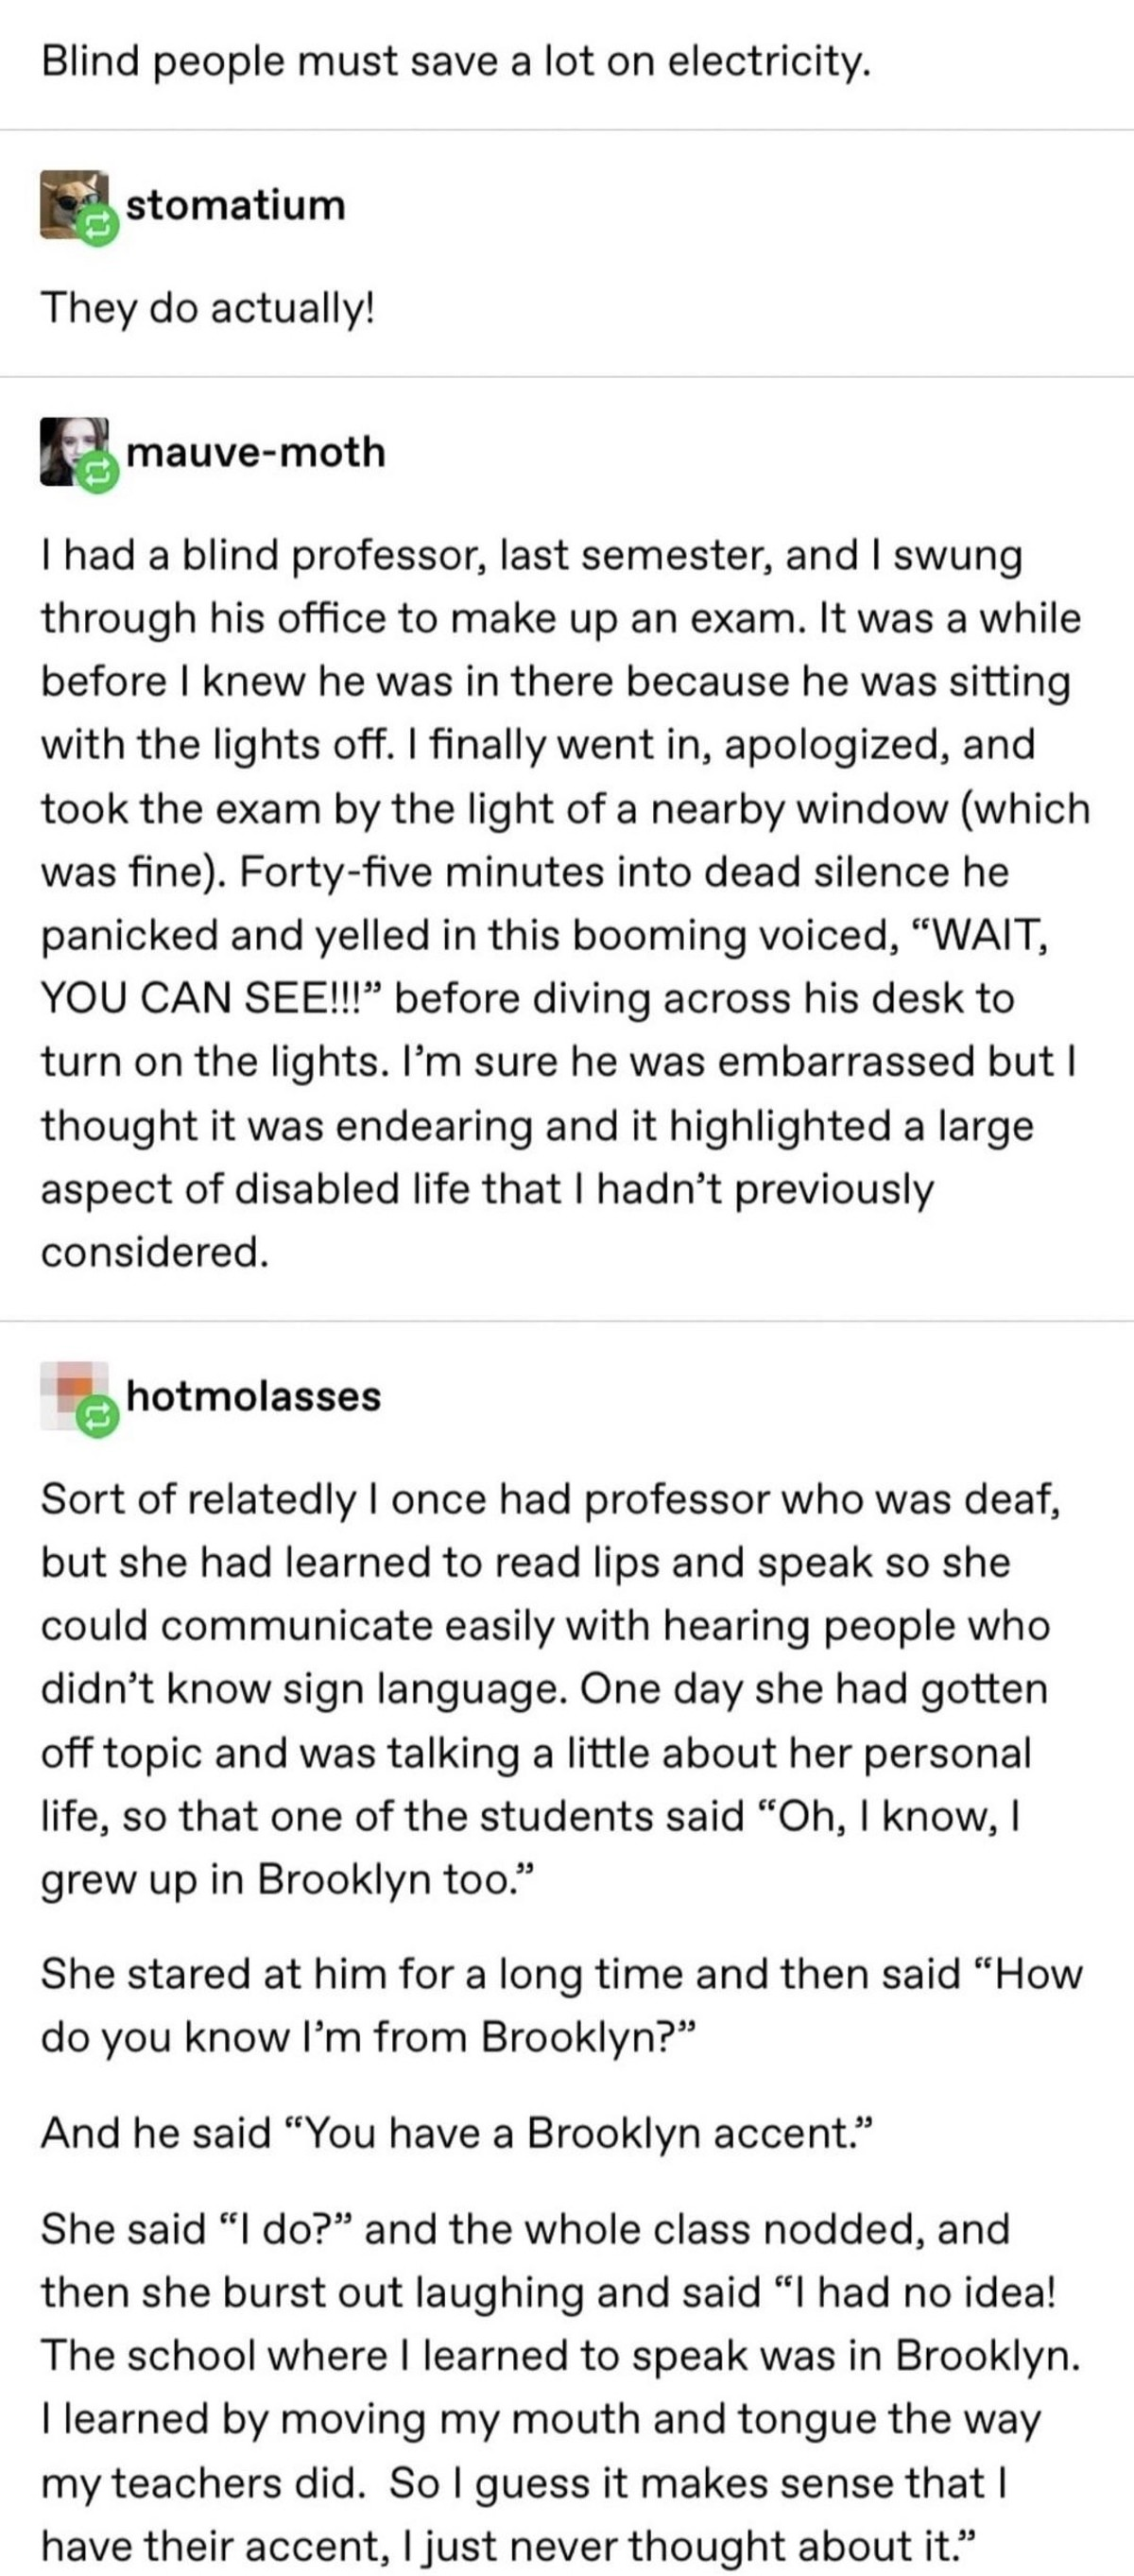 Different perspective. .. sounds fake as , not surprised it's a Tumblr post